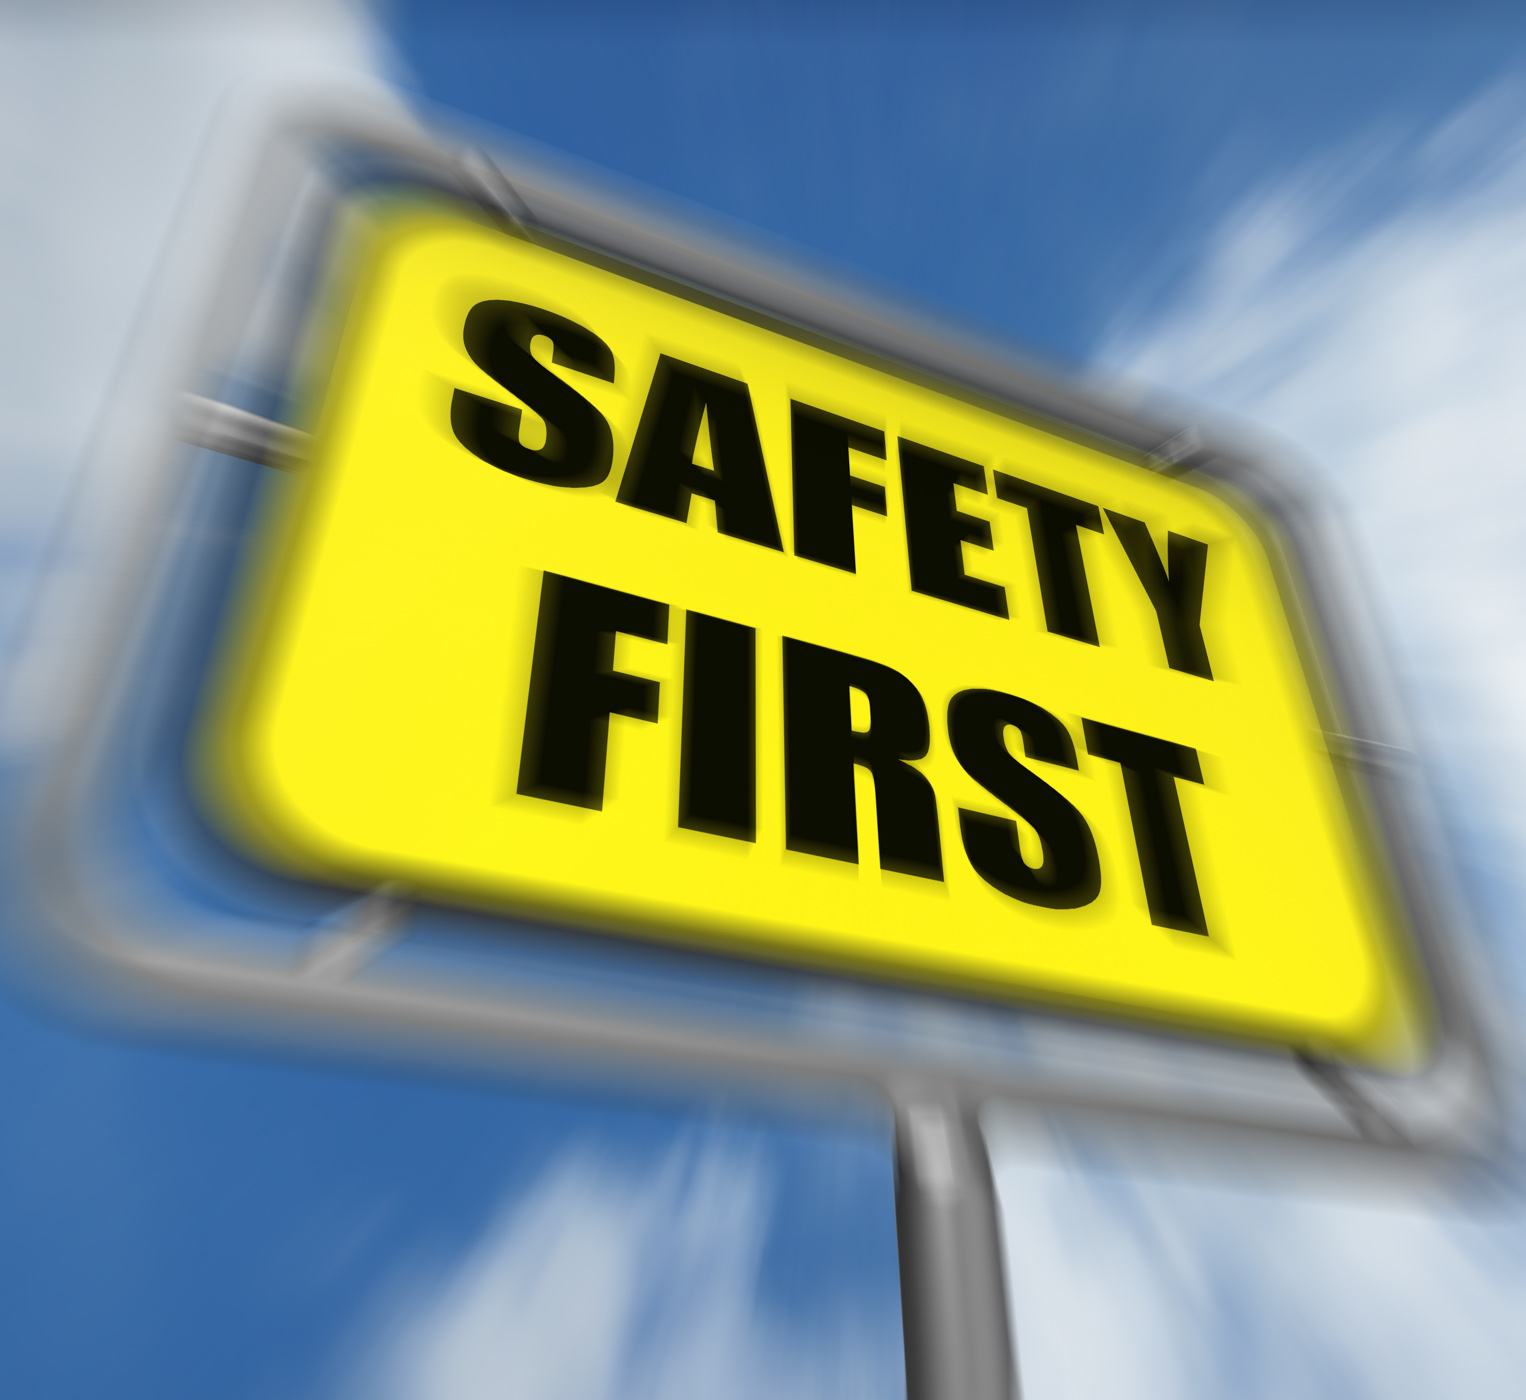 Safety First Sign Displays Prevention Preparedness and Security, Attention, Prevention, Security, Secure, HQ Photo